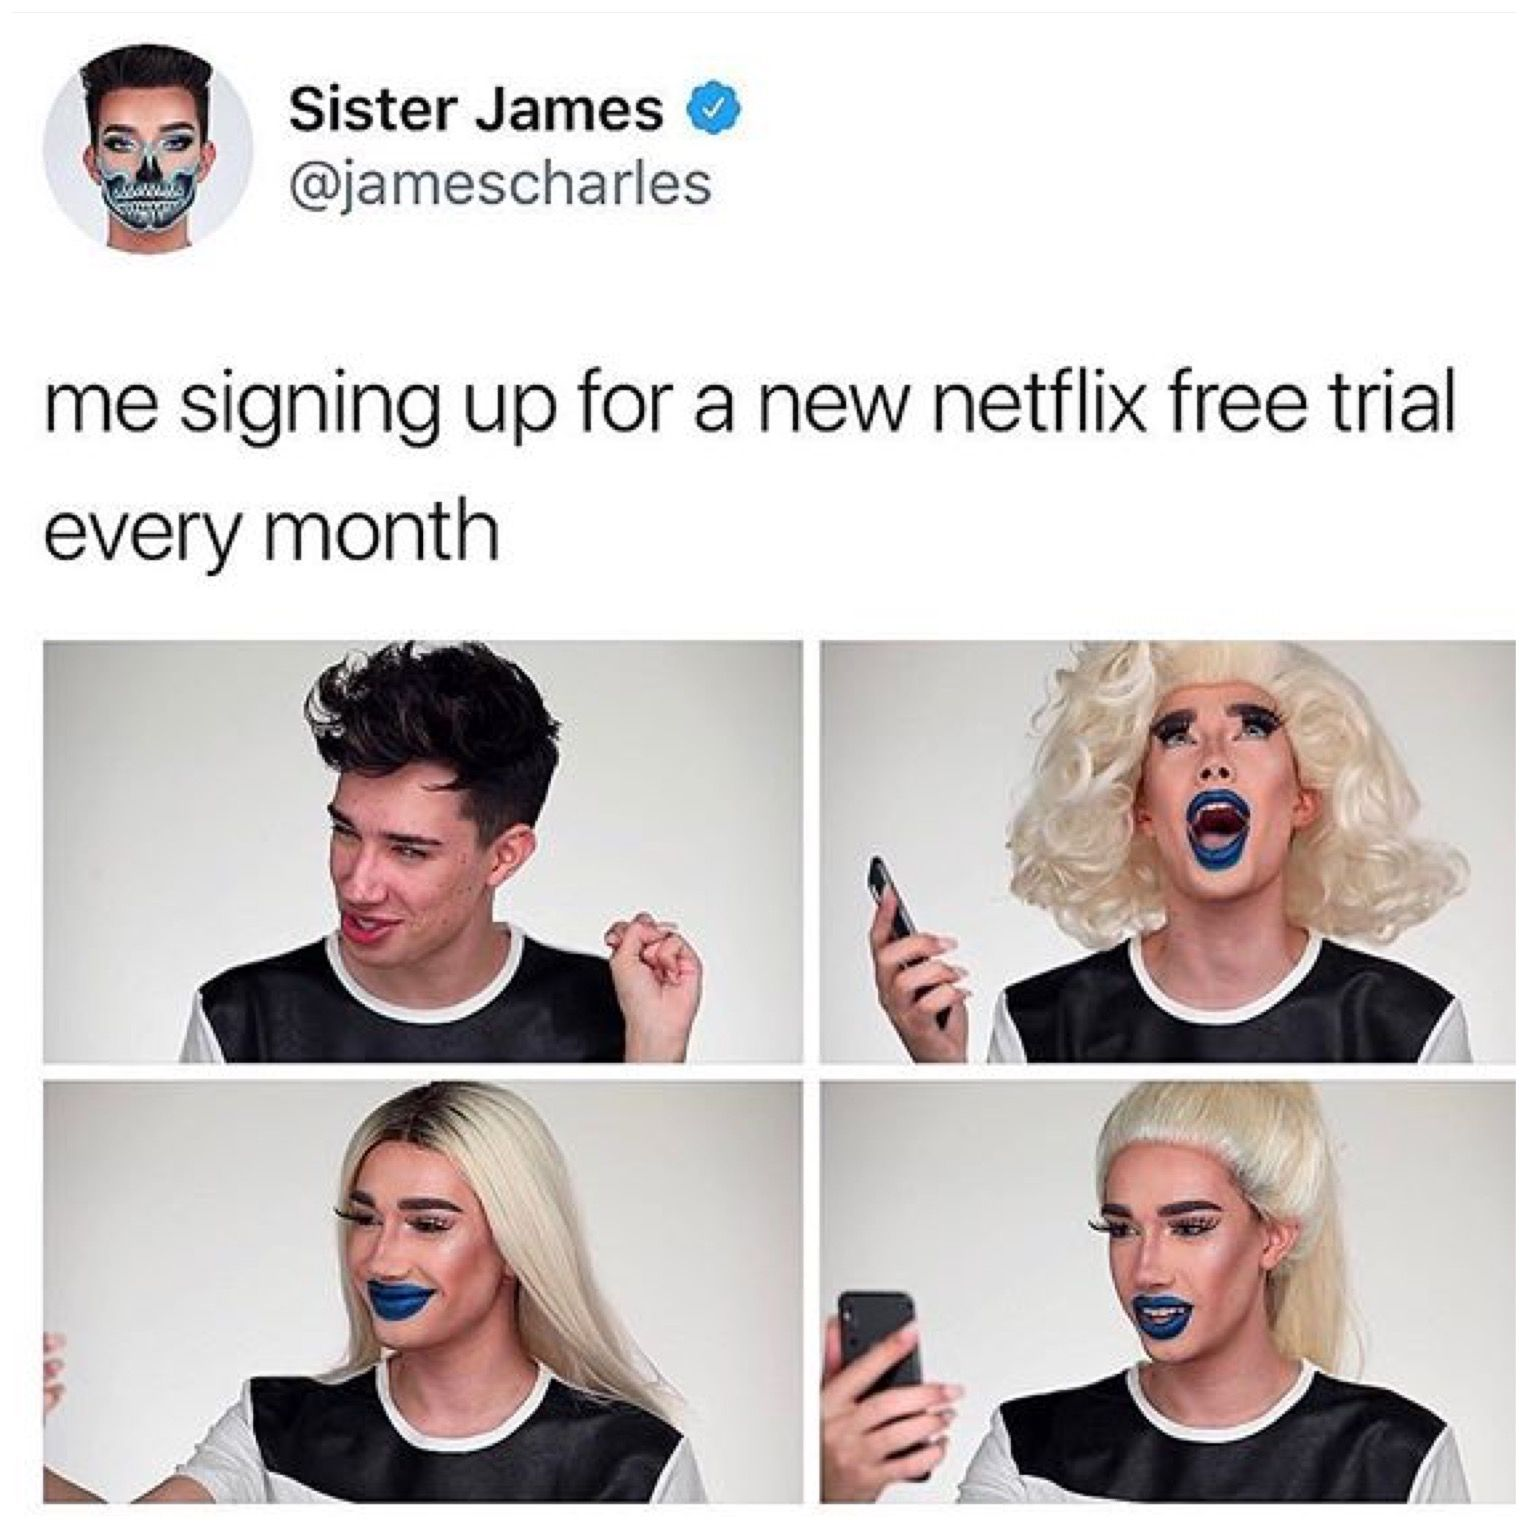 Pin by Elise D on Memes Netflix free trial, Netflix free